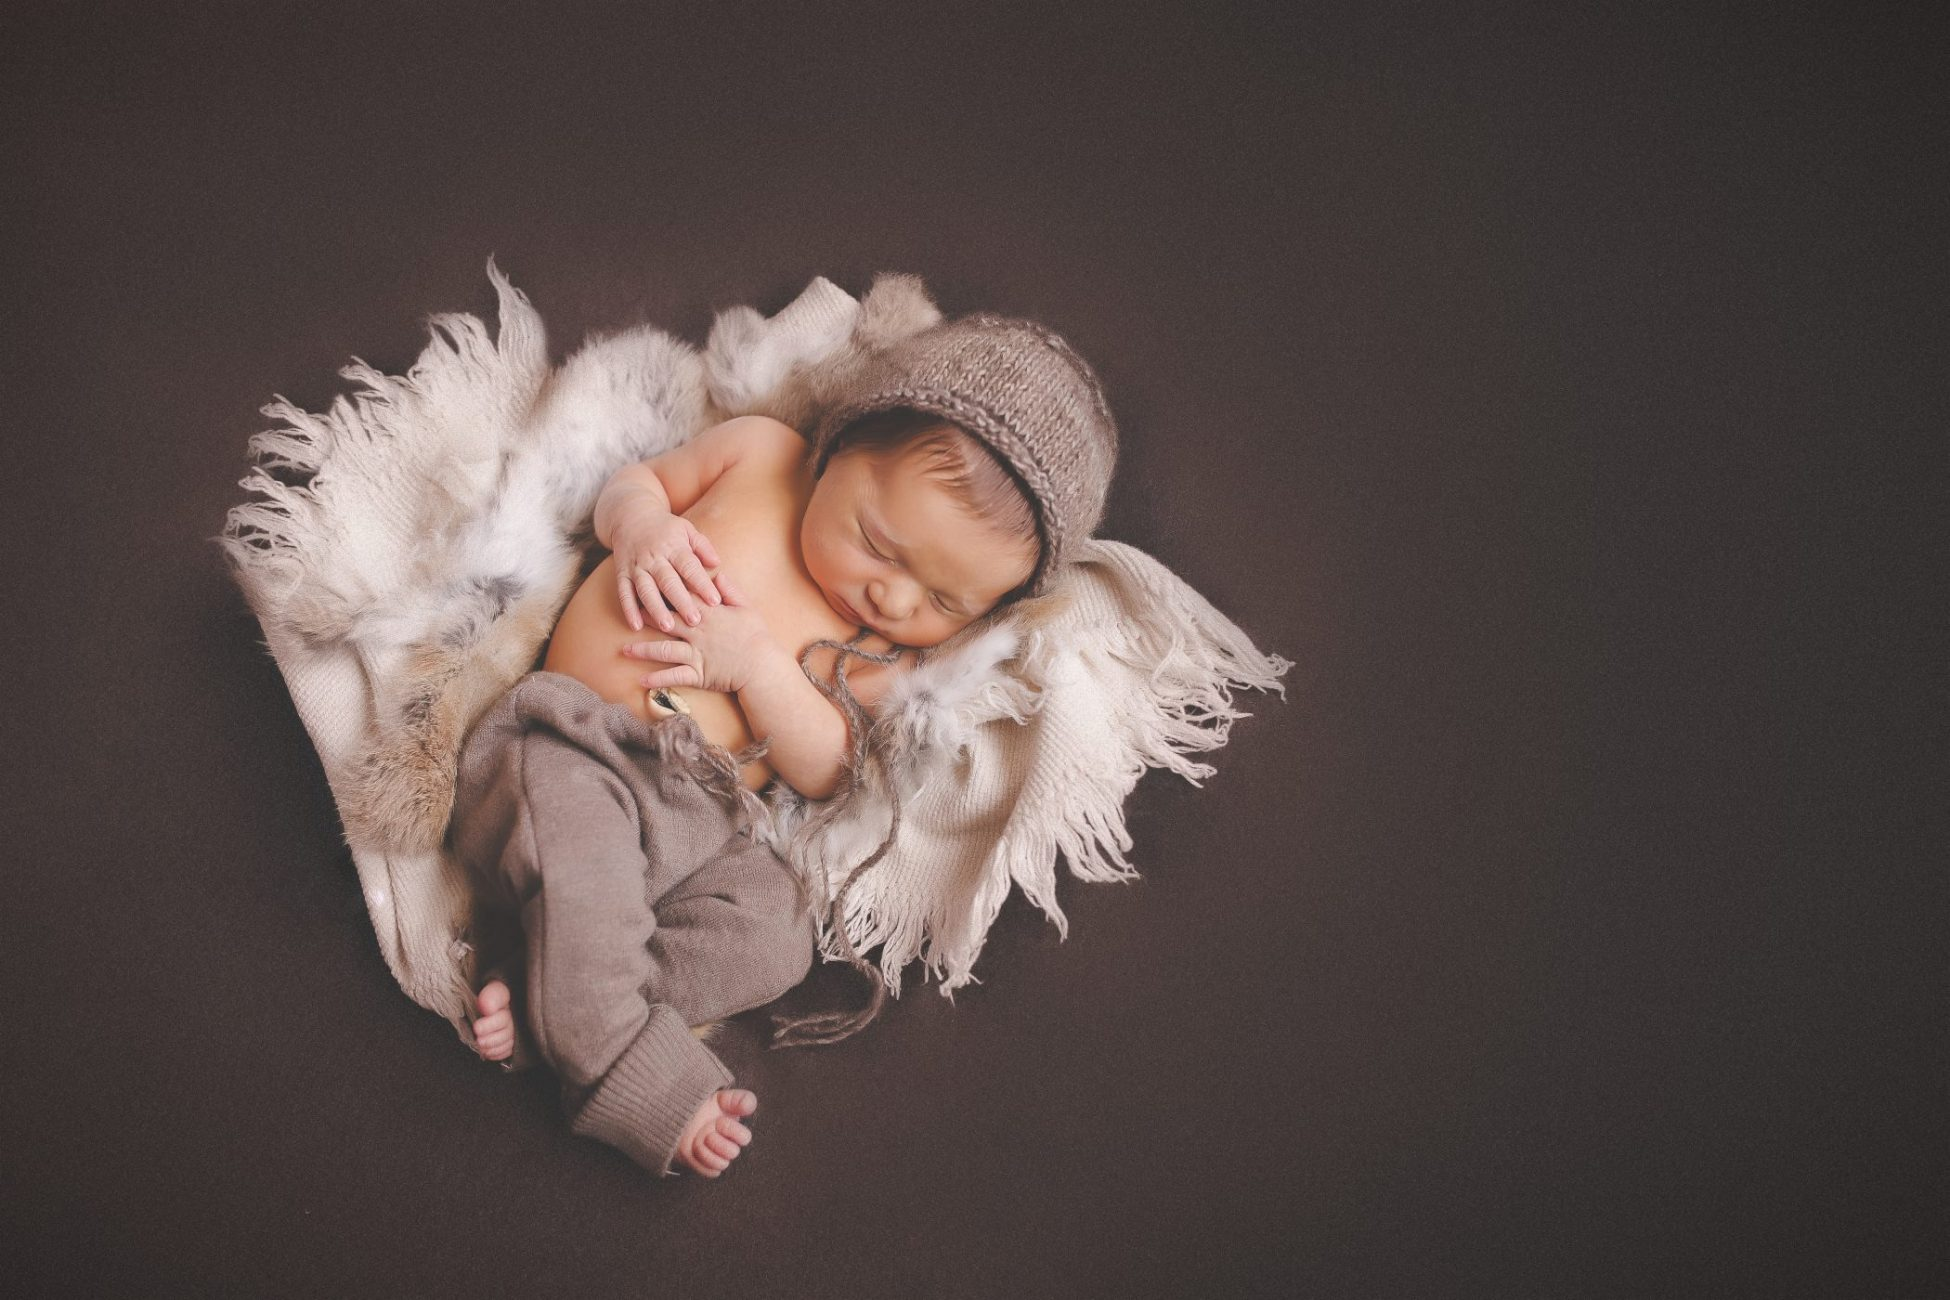 Thousand Oaks Newborn Photographer